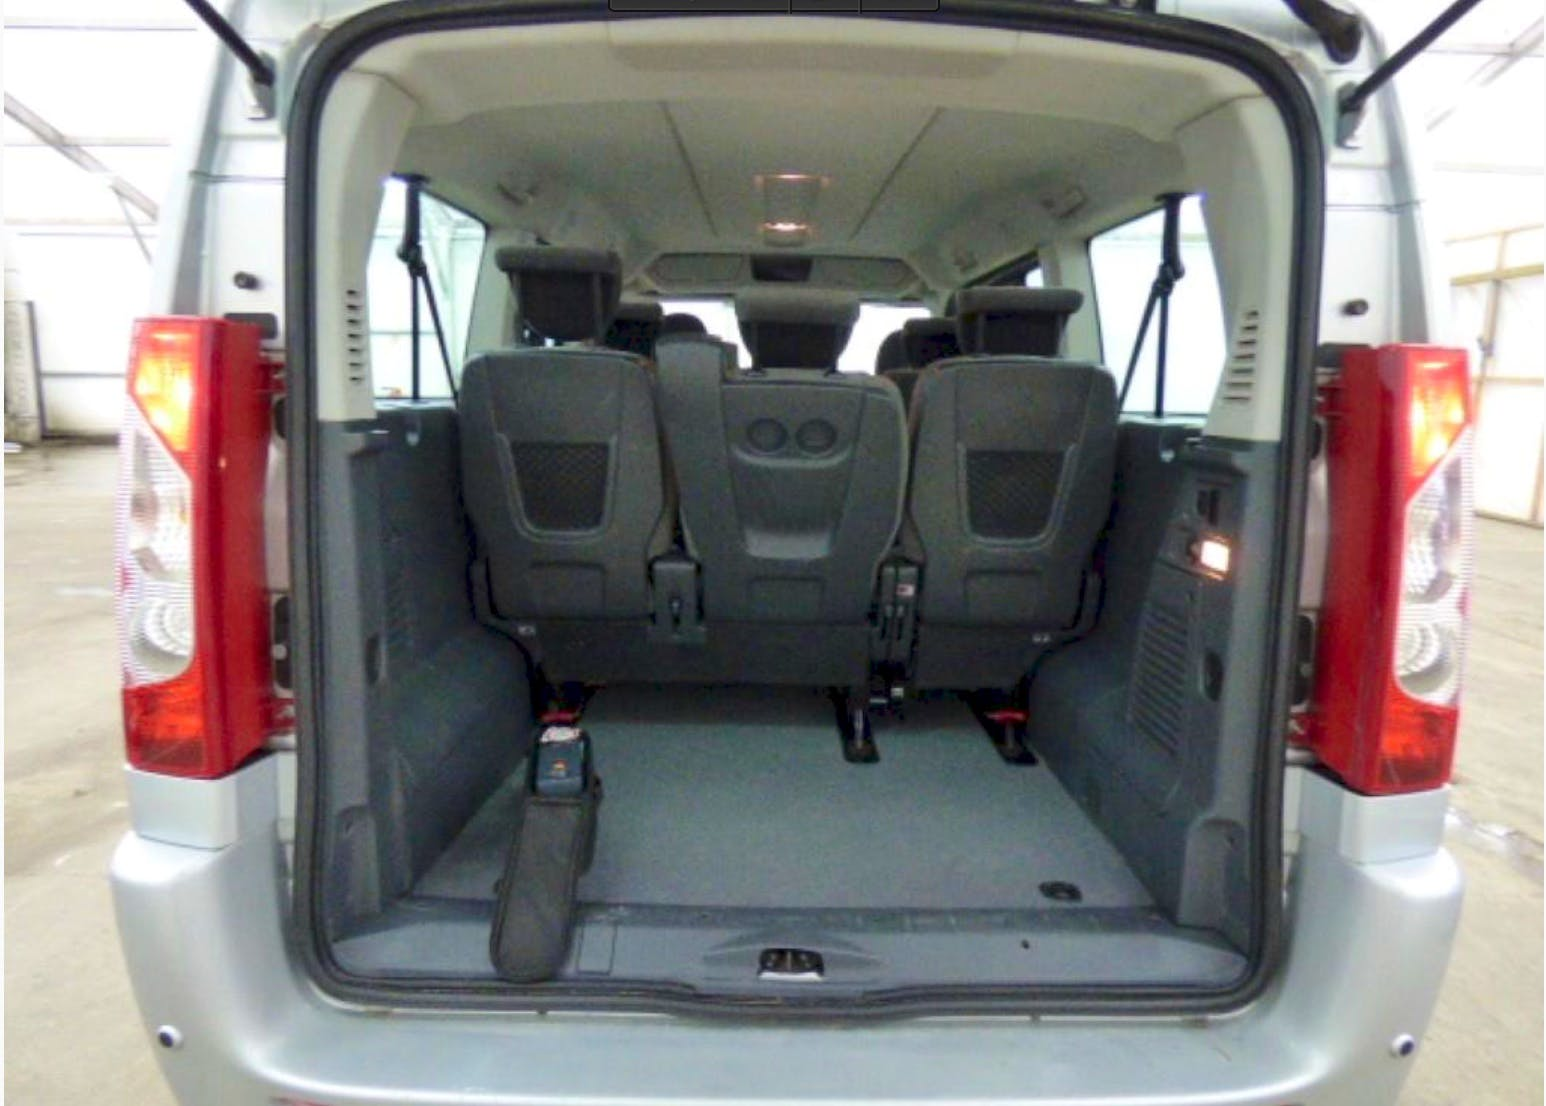 Citroen Jumpy 2.0 HDI, 2013, Diesel, 9 places et plus